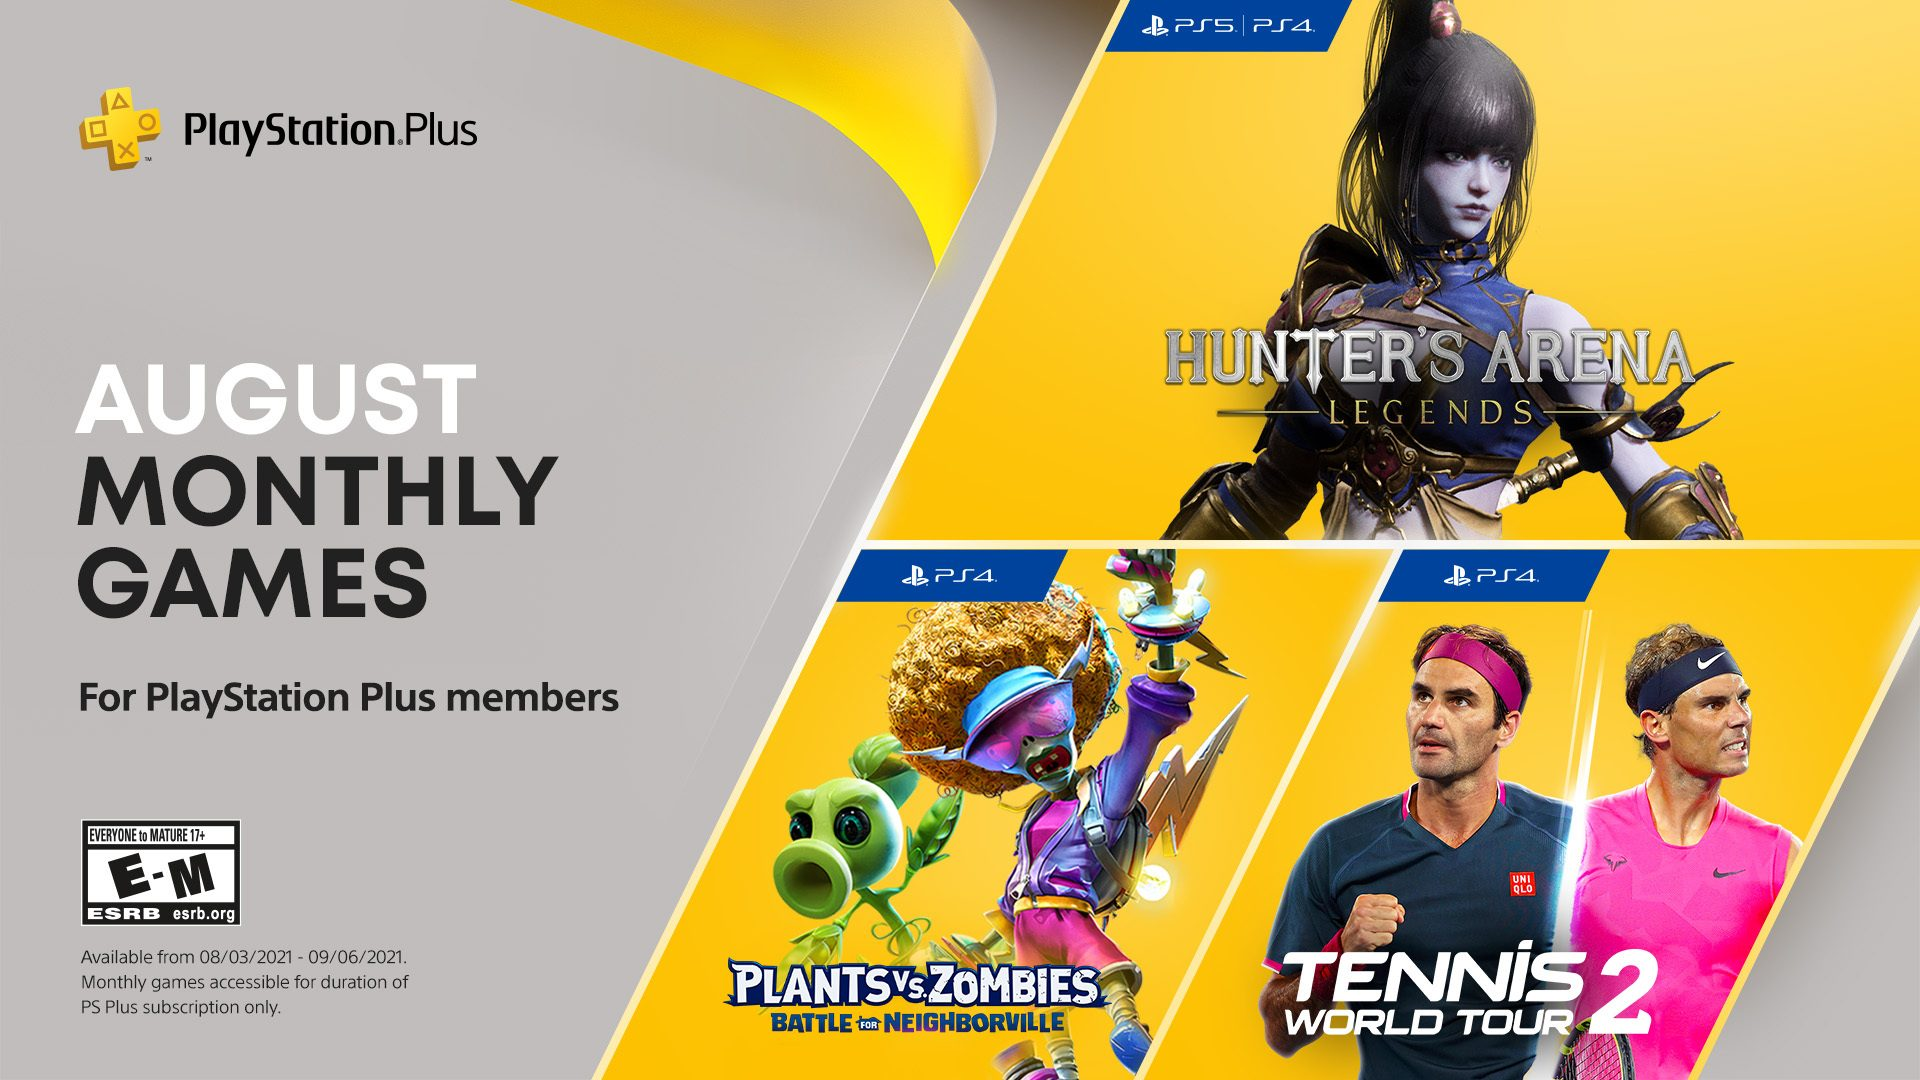 PlayStation Plus games for August: Hunter's Arena: Legends, Plants vs.  Zombies: Battle for Neighborville, Tennis World Tour 2 – PlayStation.Blog